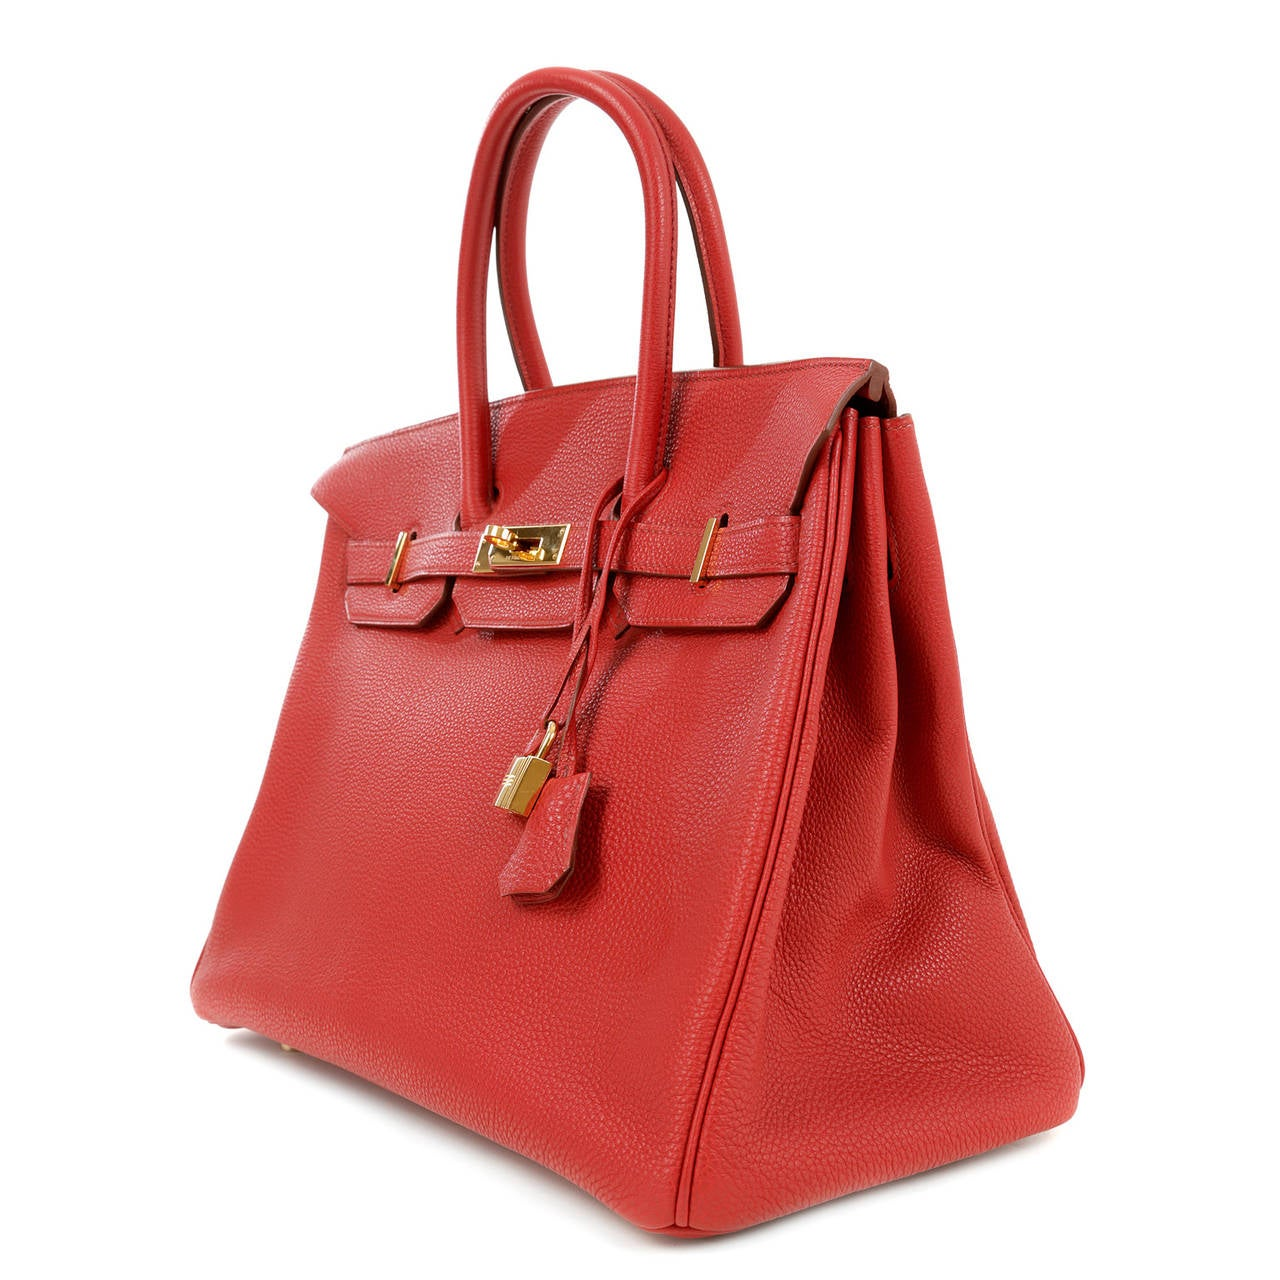 91e1c18dc0 Hermes Red Leather 35 cm Birkin Bag- RED TOGO with GOLD hardware at 1stdibs